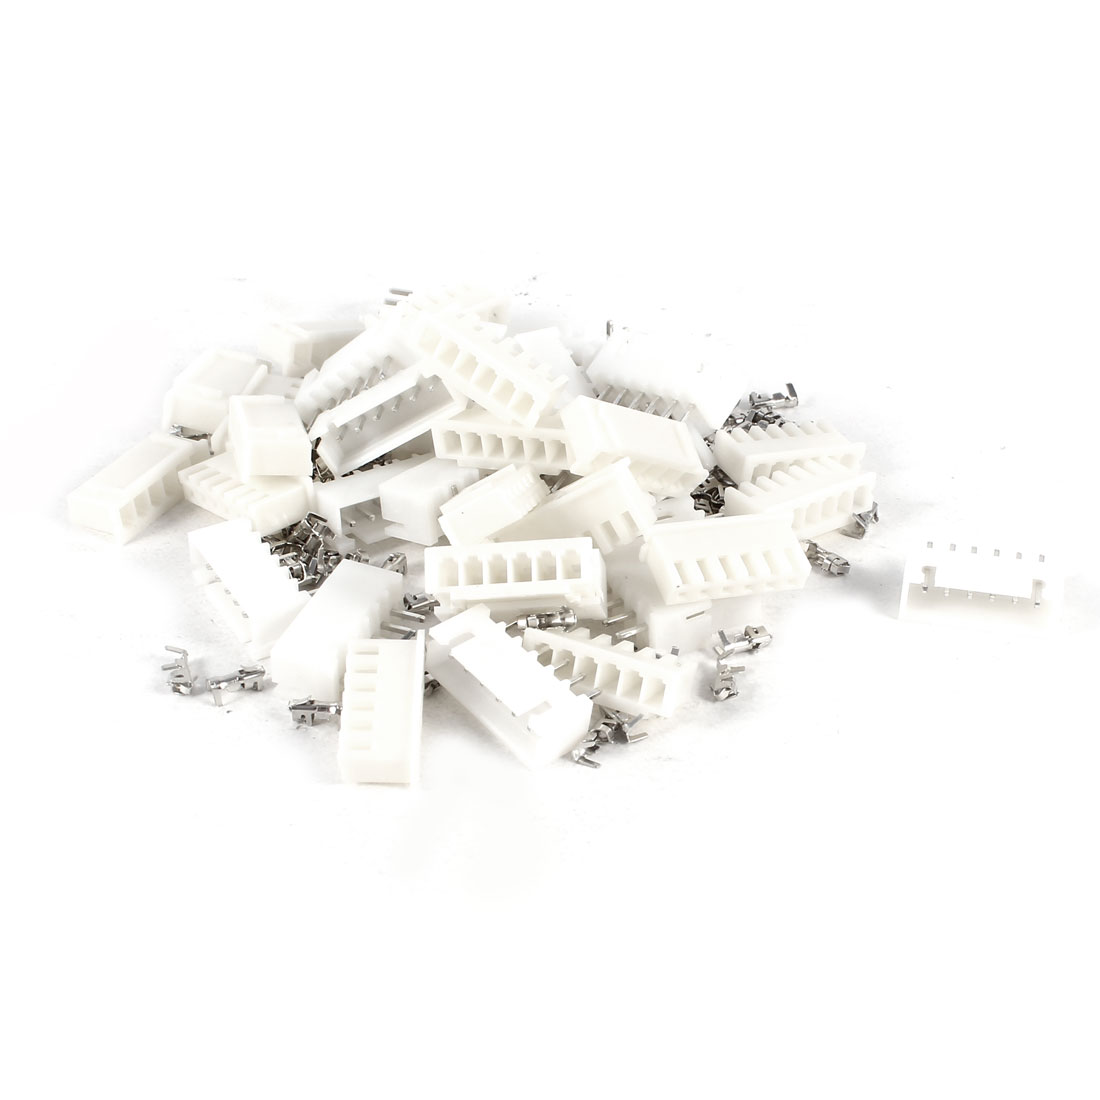 20 Pcs XH2.54-6P Connector Kits 2.54mm Pitch 6P Pin Heathers + Bending Socket + Terminals